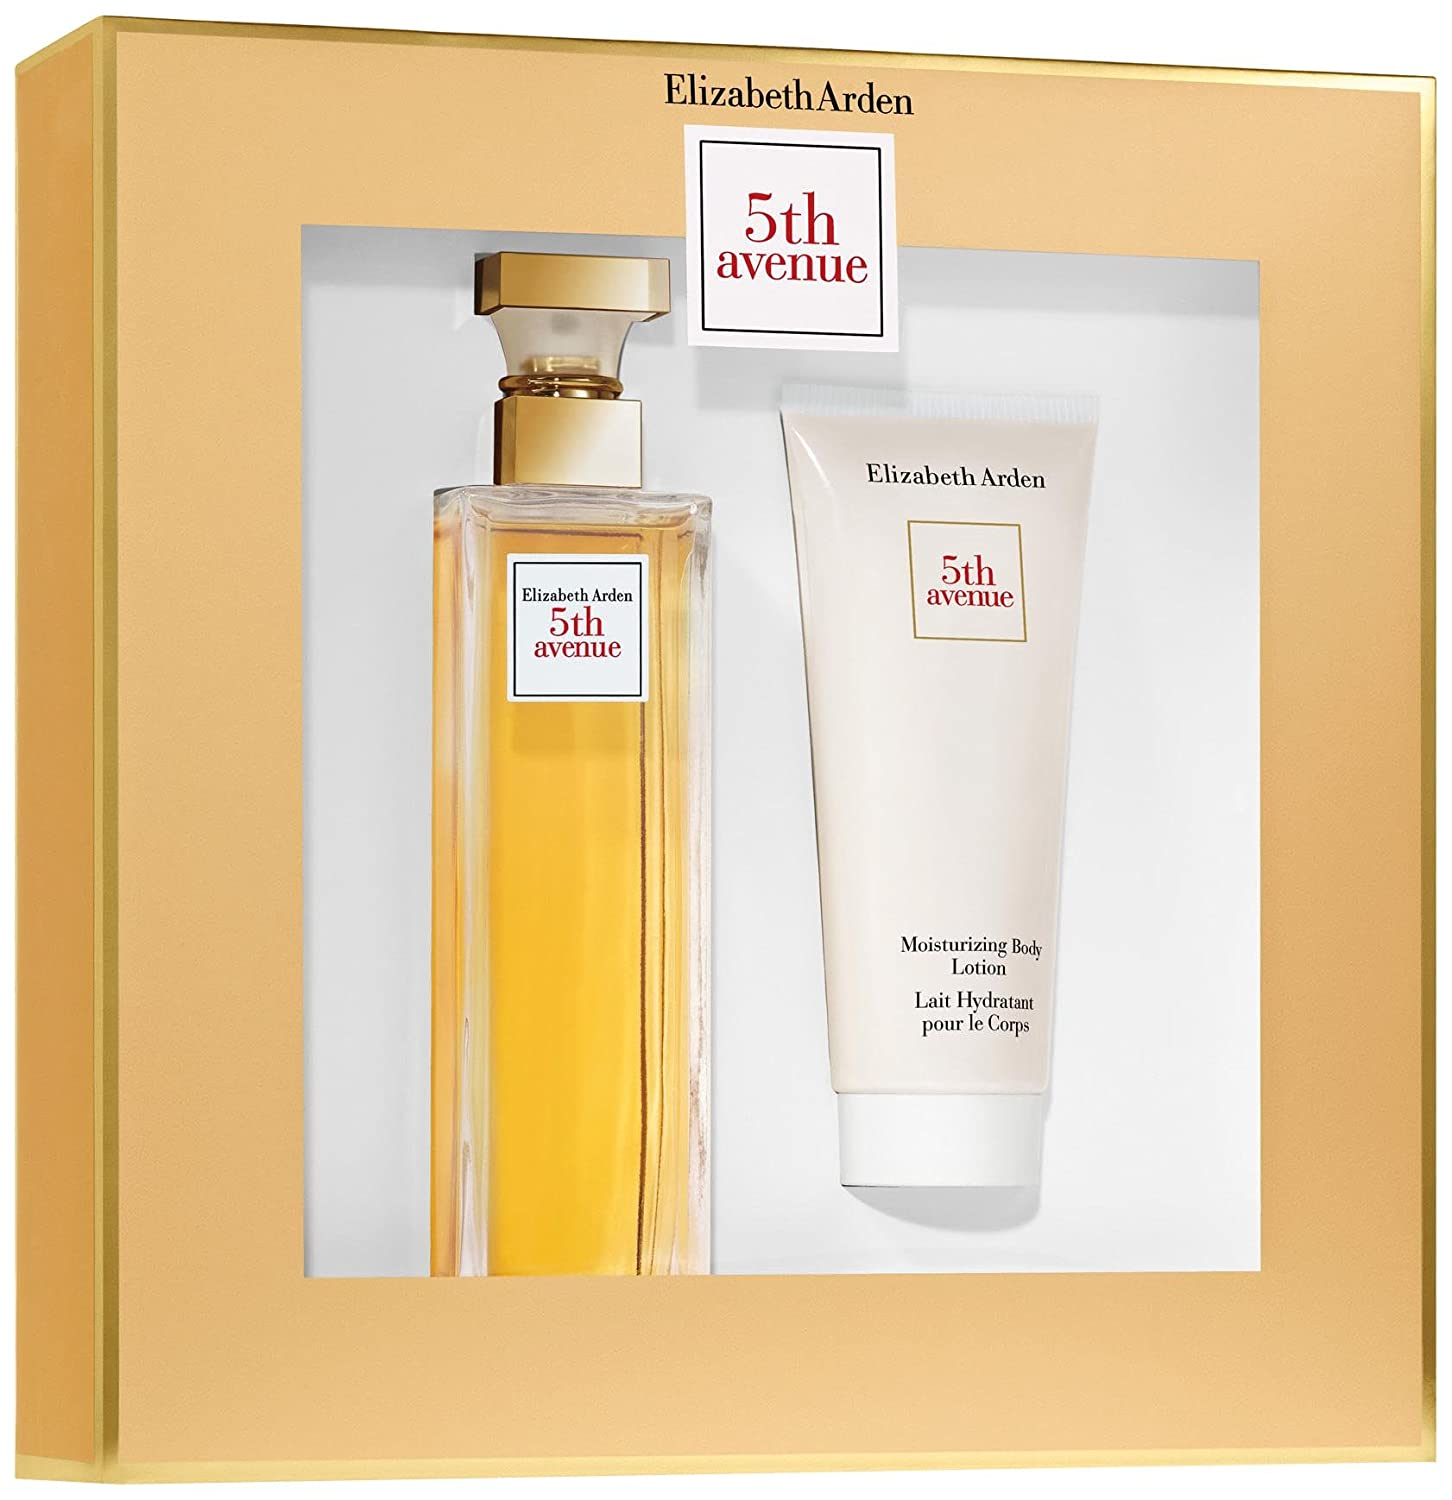 FIFTH AVENUE by Elizabeth Arden Gift Set for WOMEN: EAU DE PARFUM SPRAY 4.2 OZ & BODY LOTION 3.3 OZ ELIZABETH-390600